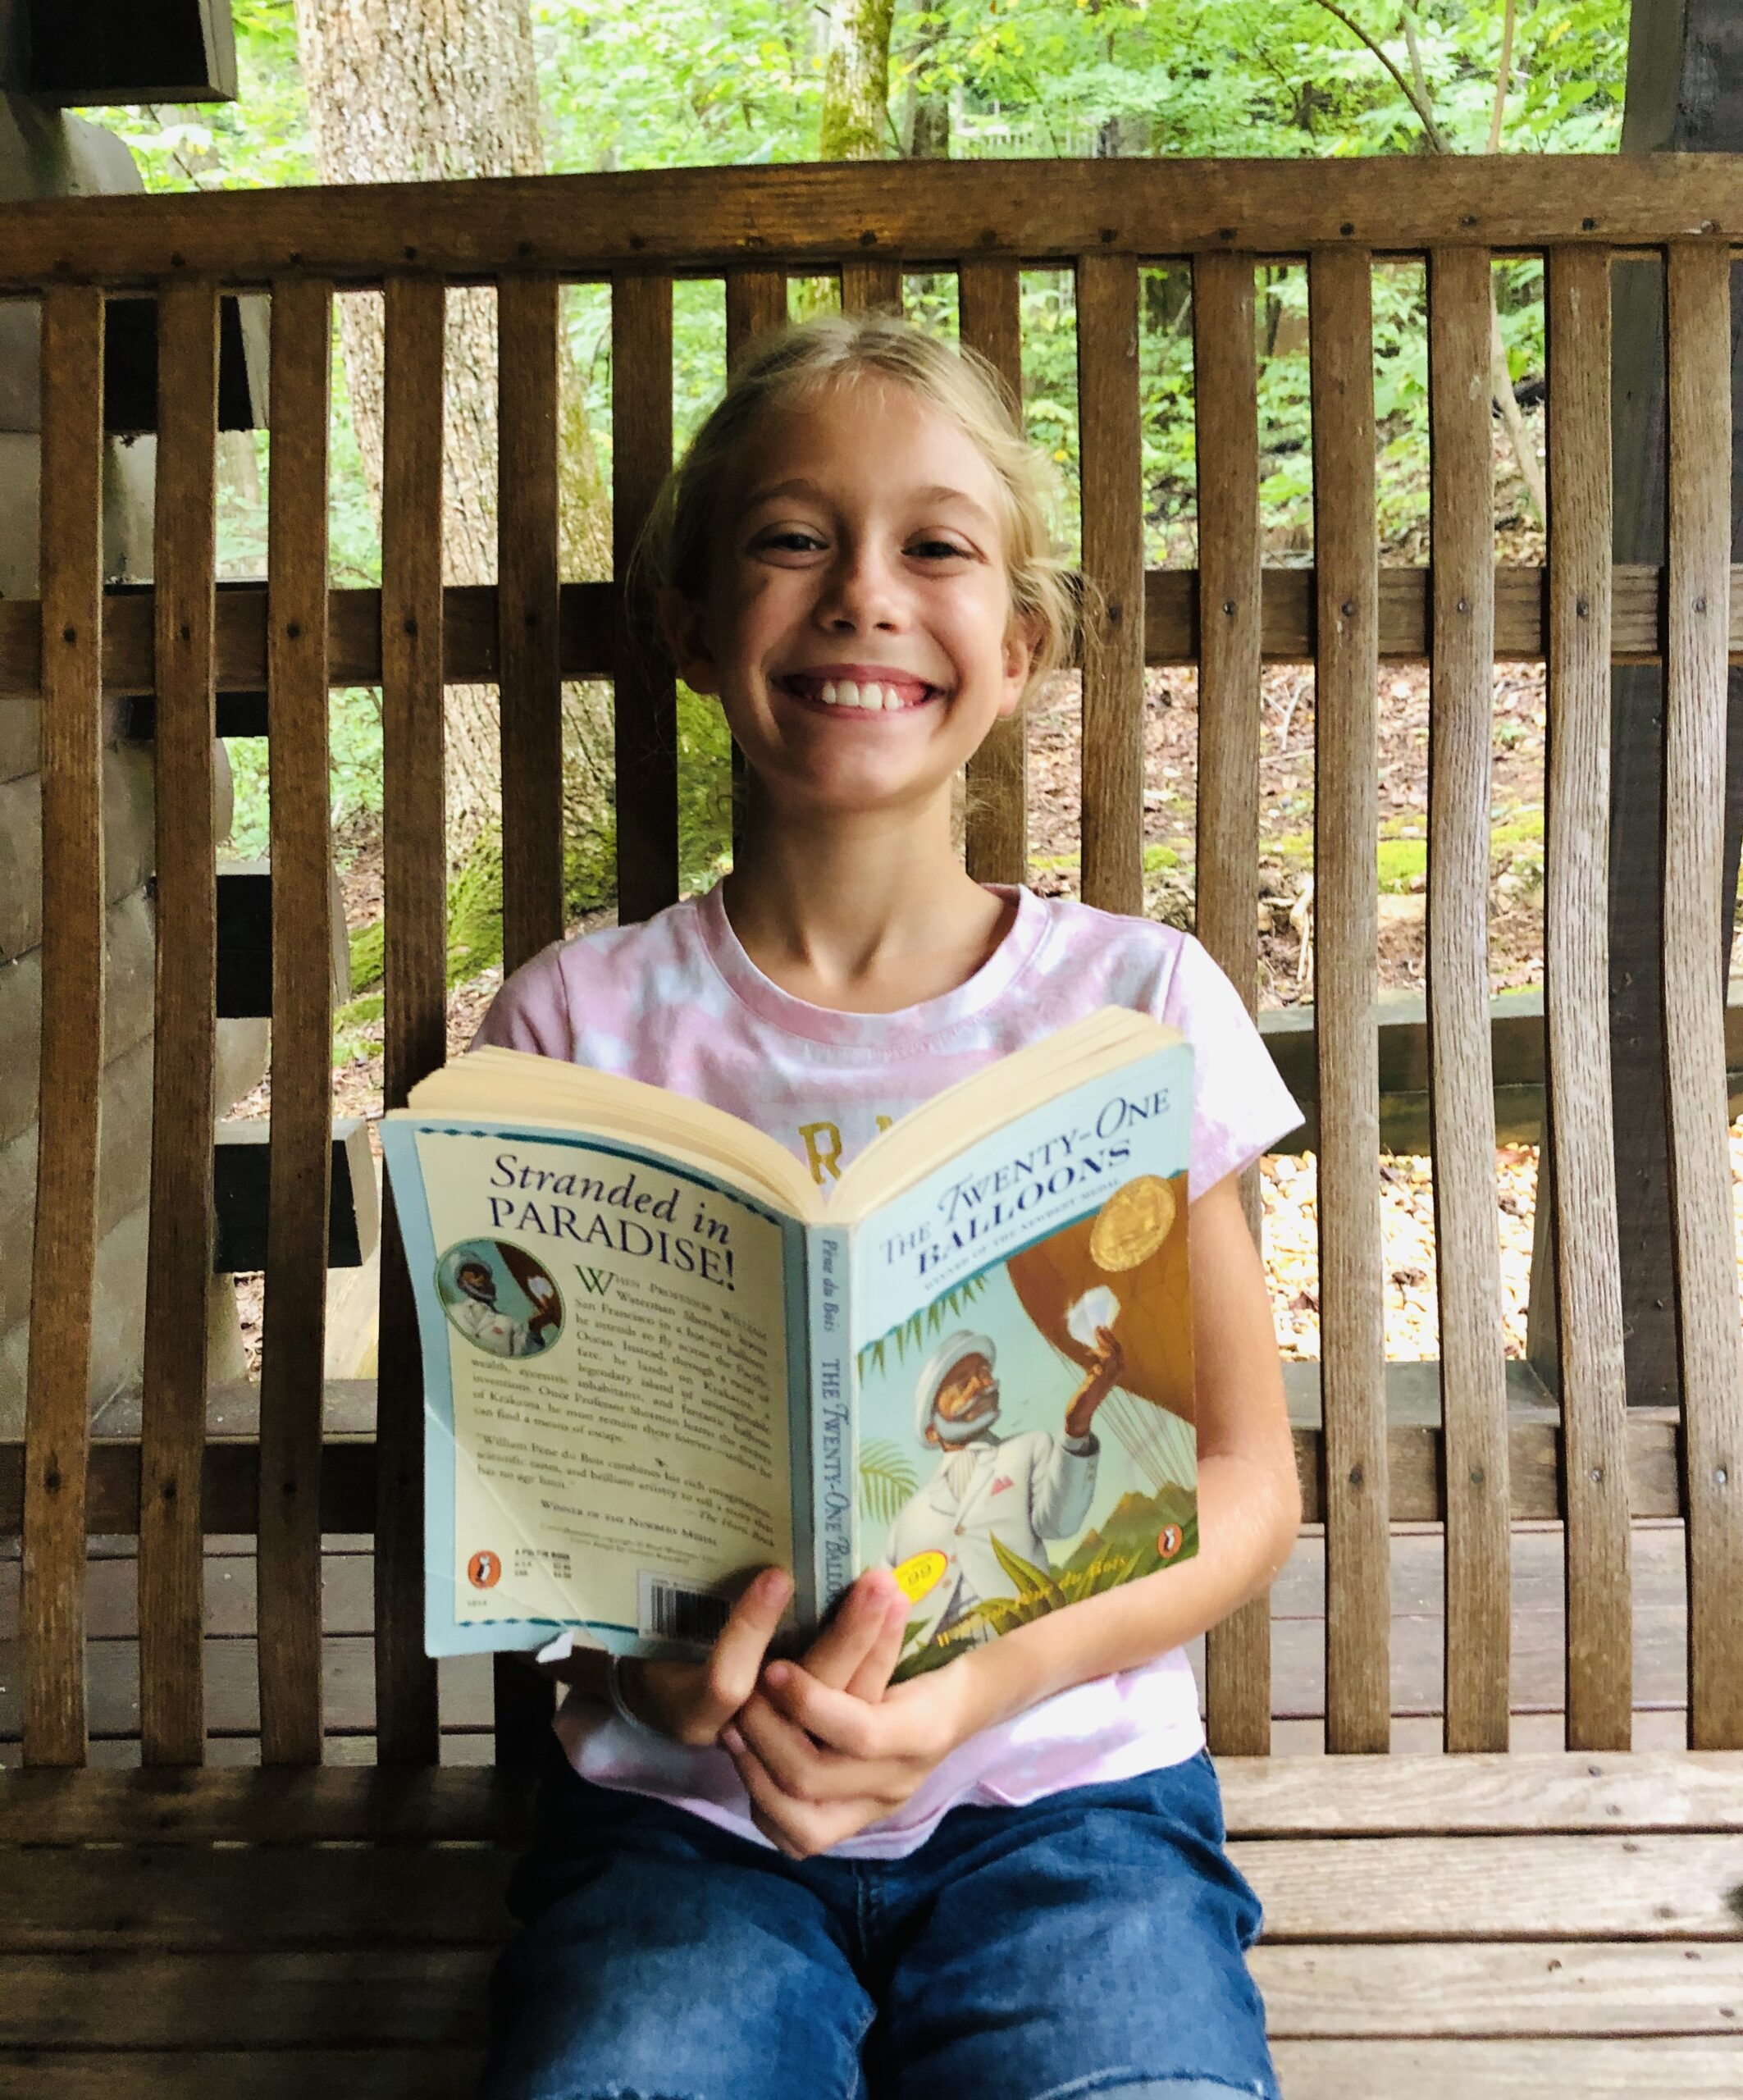 Blond haired Brecken sitting in a swing reading Twenty One Balloons for the Children's Book Review.